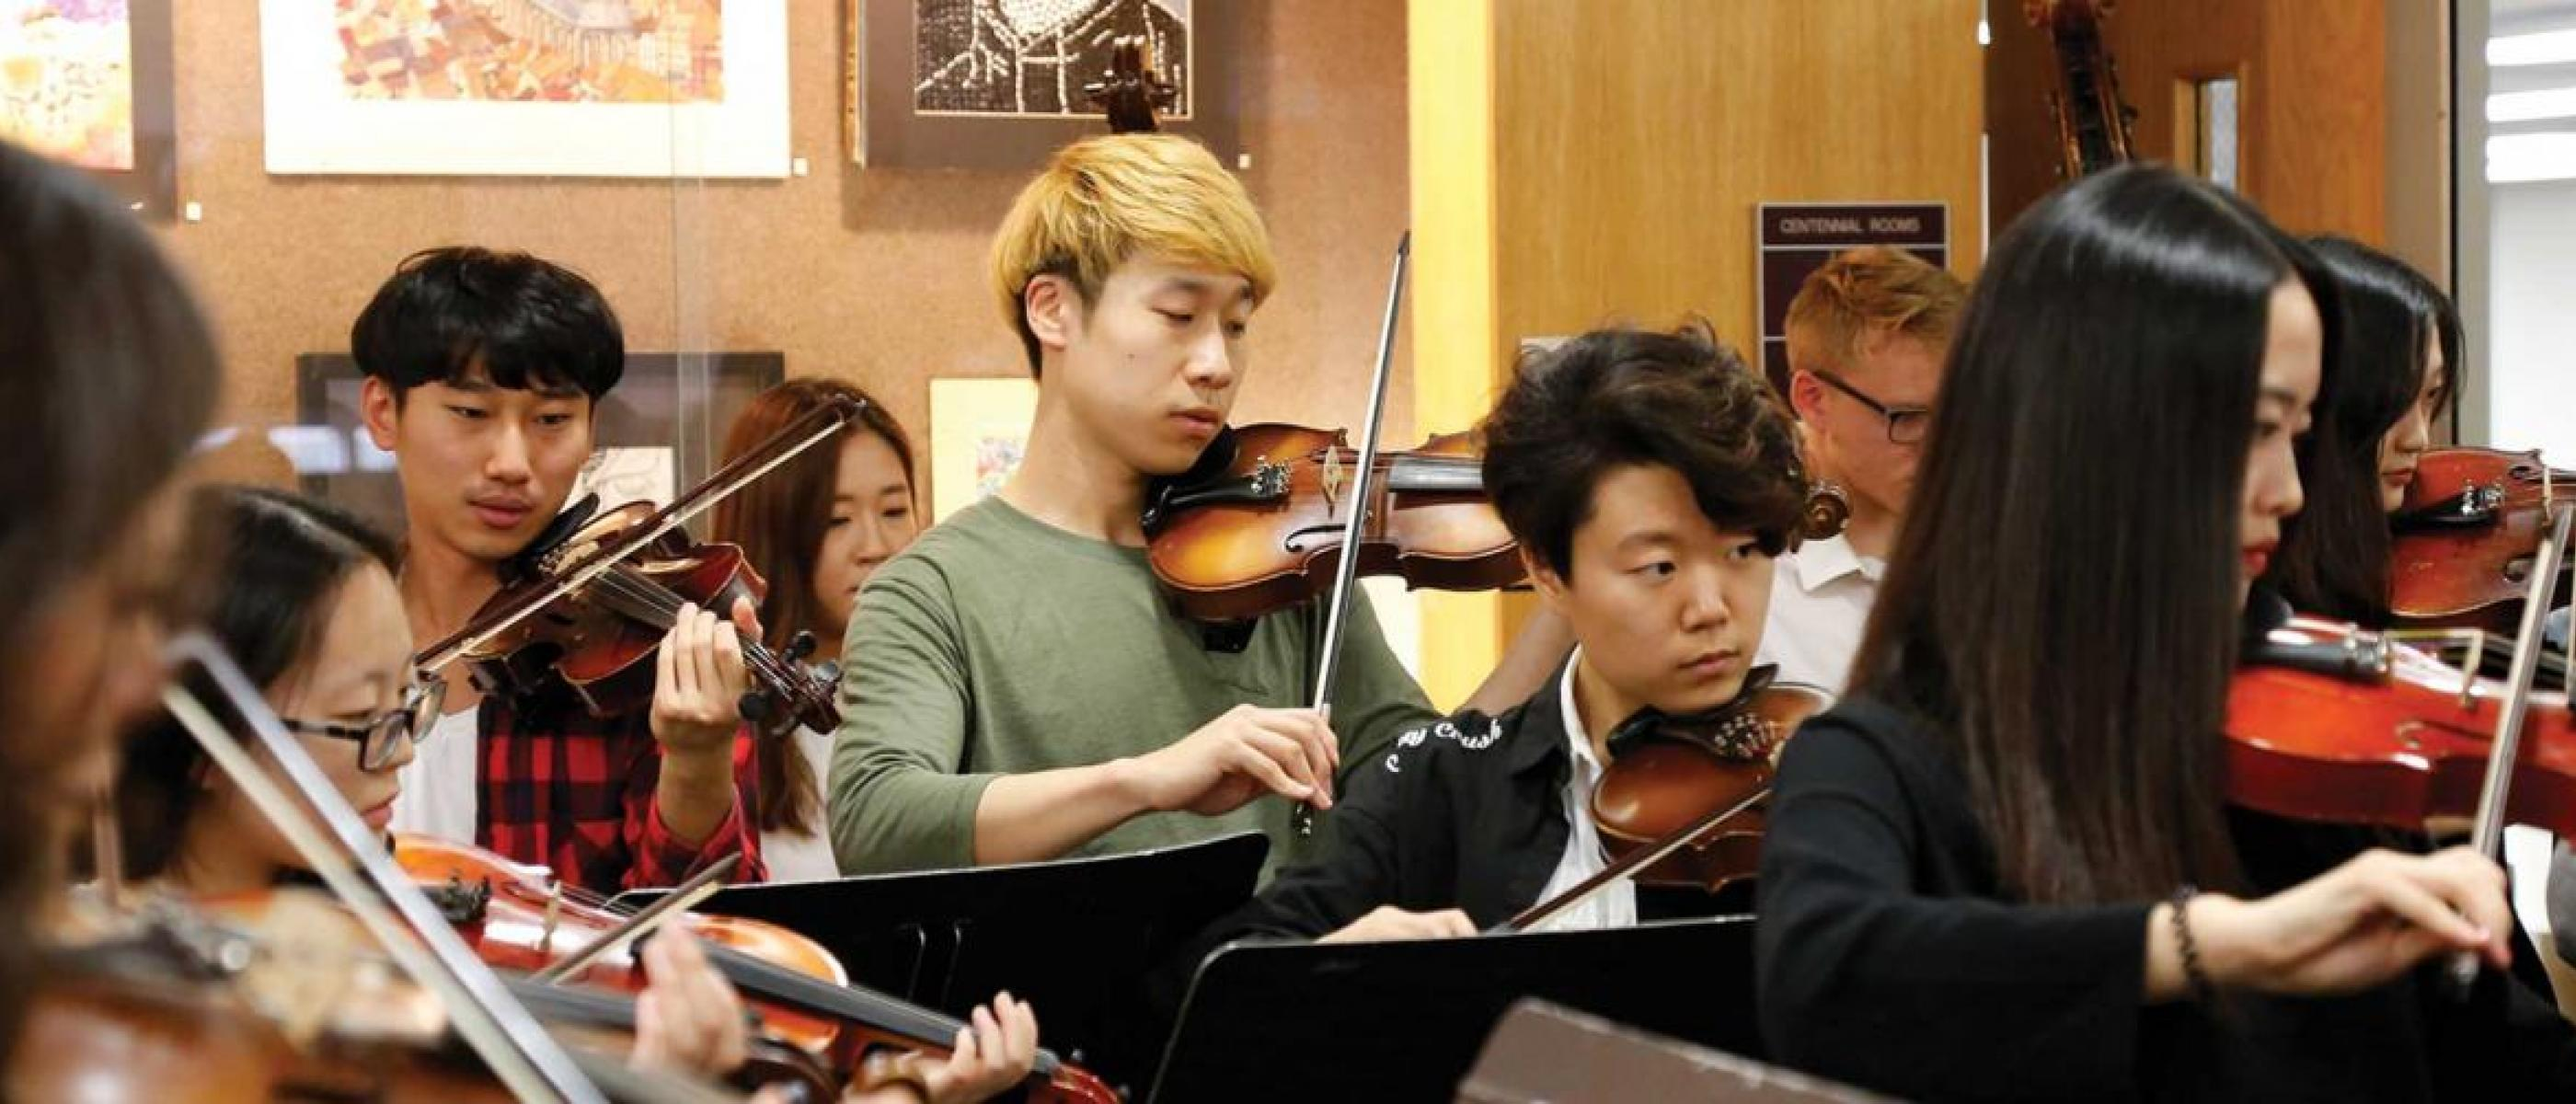 Orchestra Rehearsal